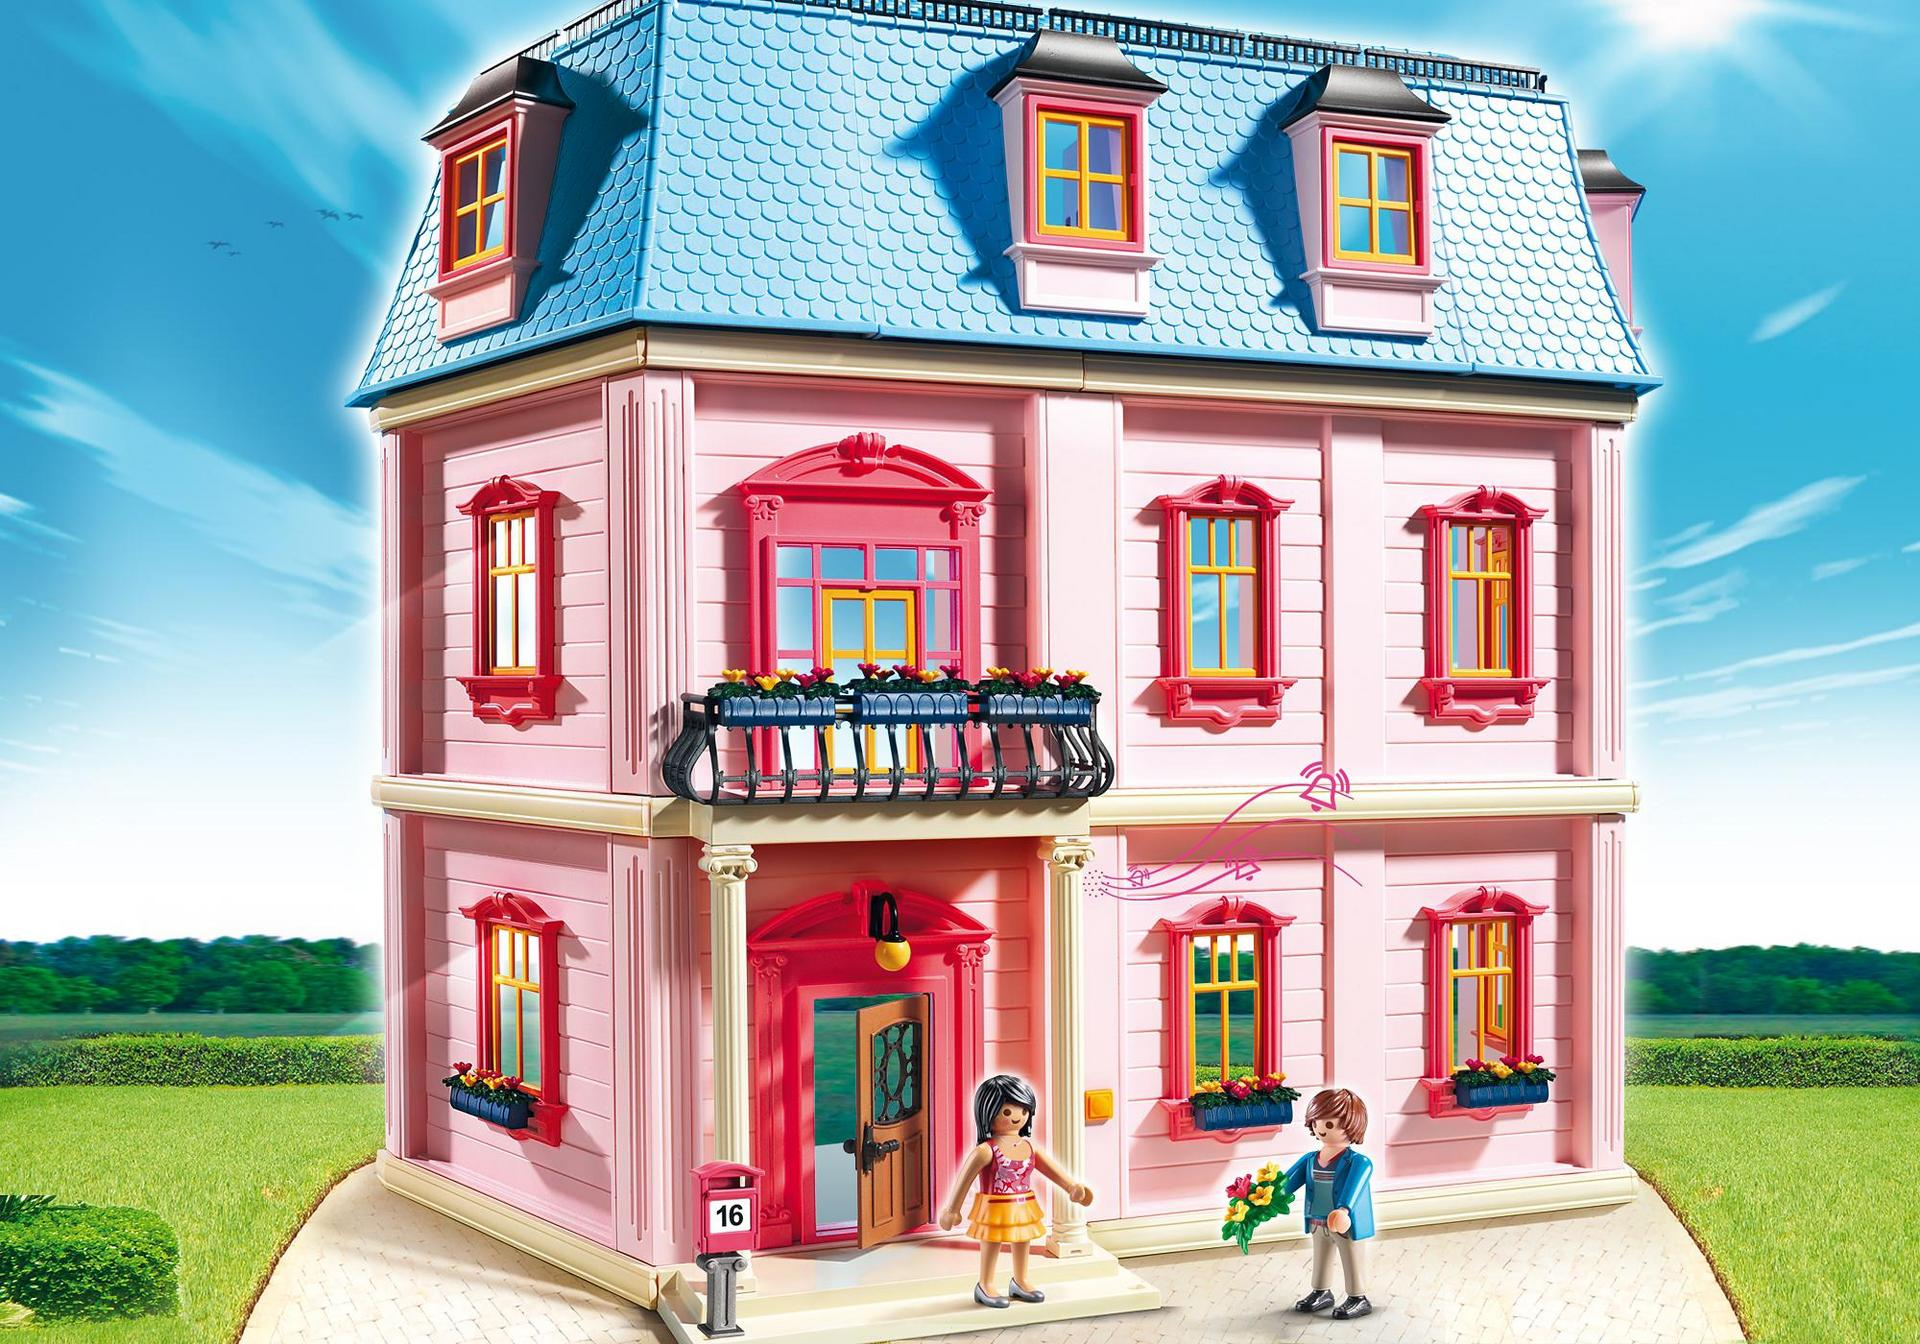 Maison traditionnelle 5303 playmobil france for Mode interieur maison 2017